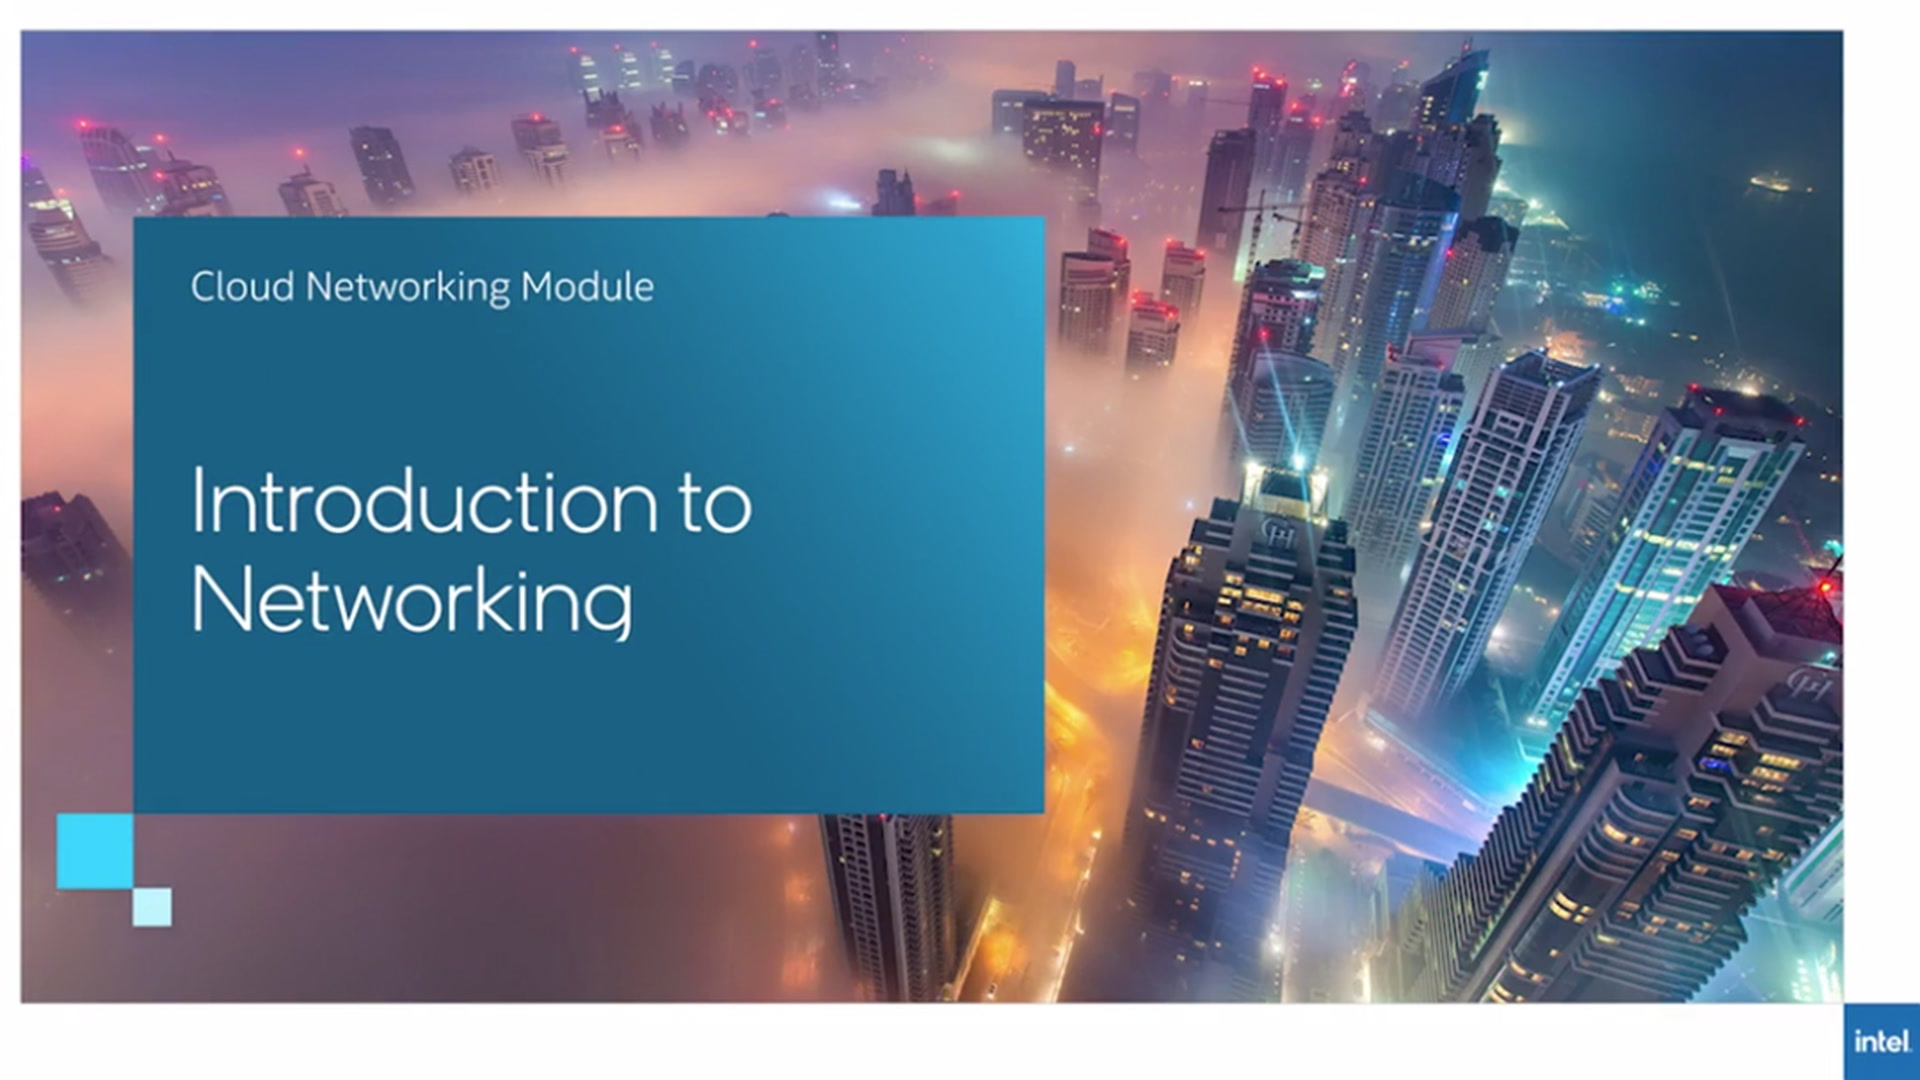 Chapter 1: Introduction to Networking